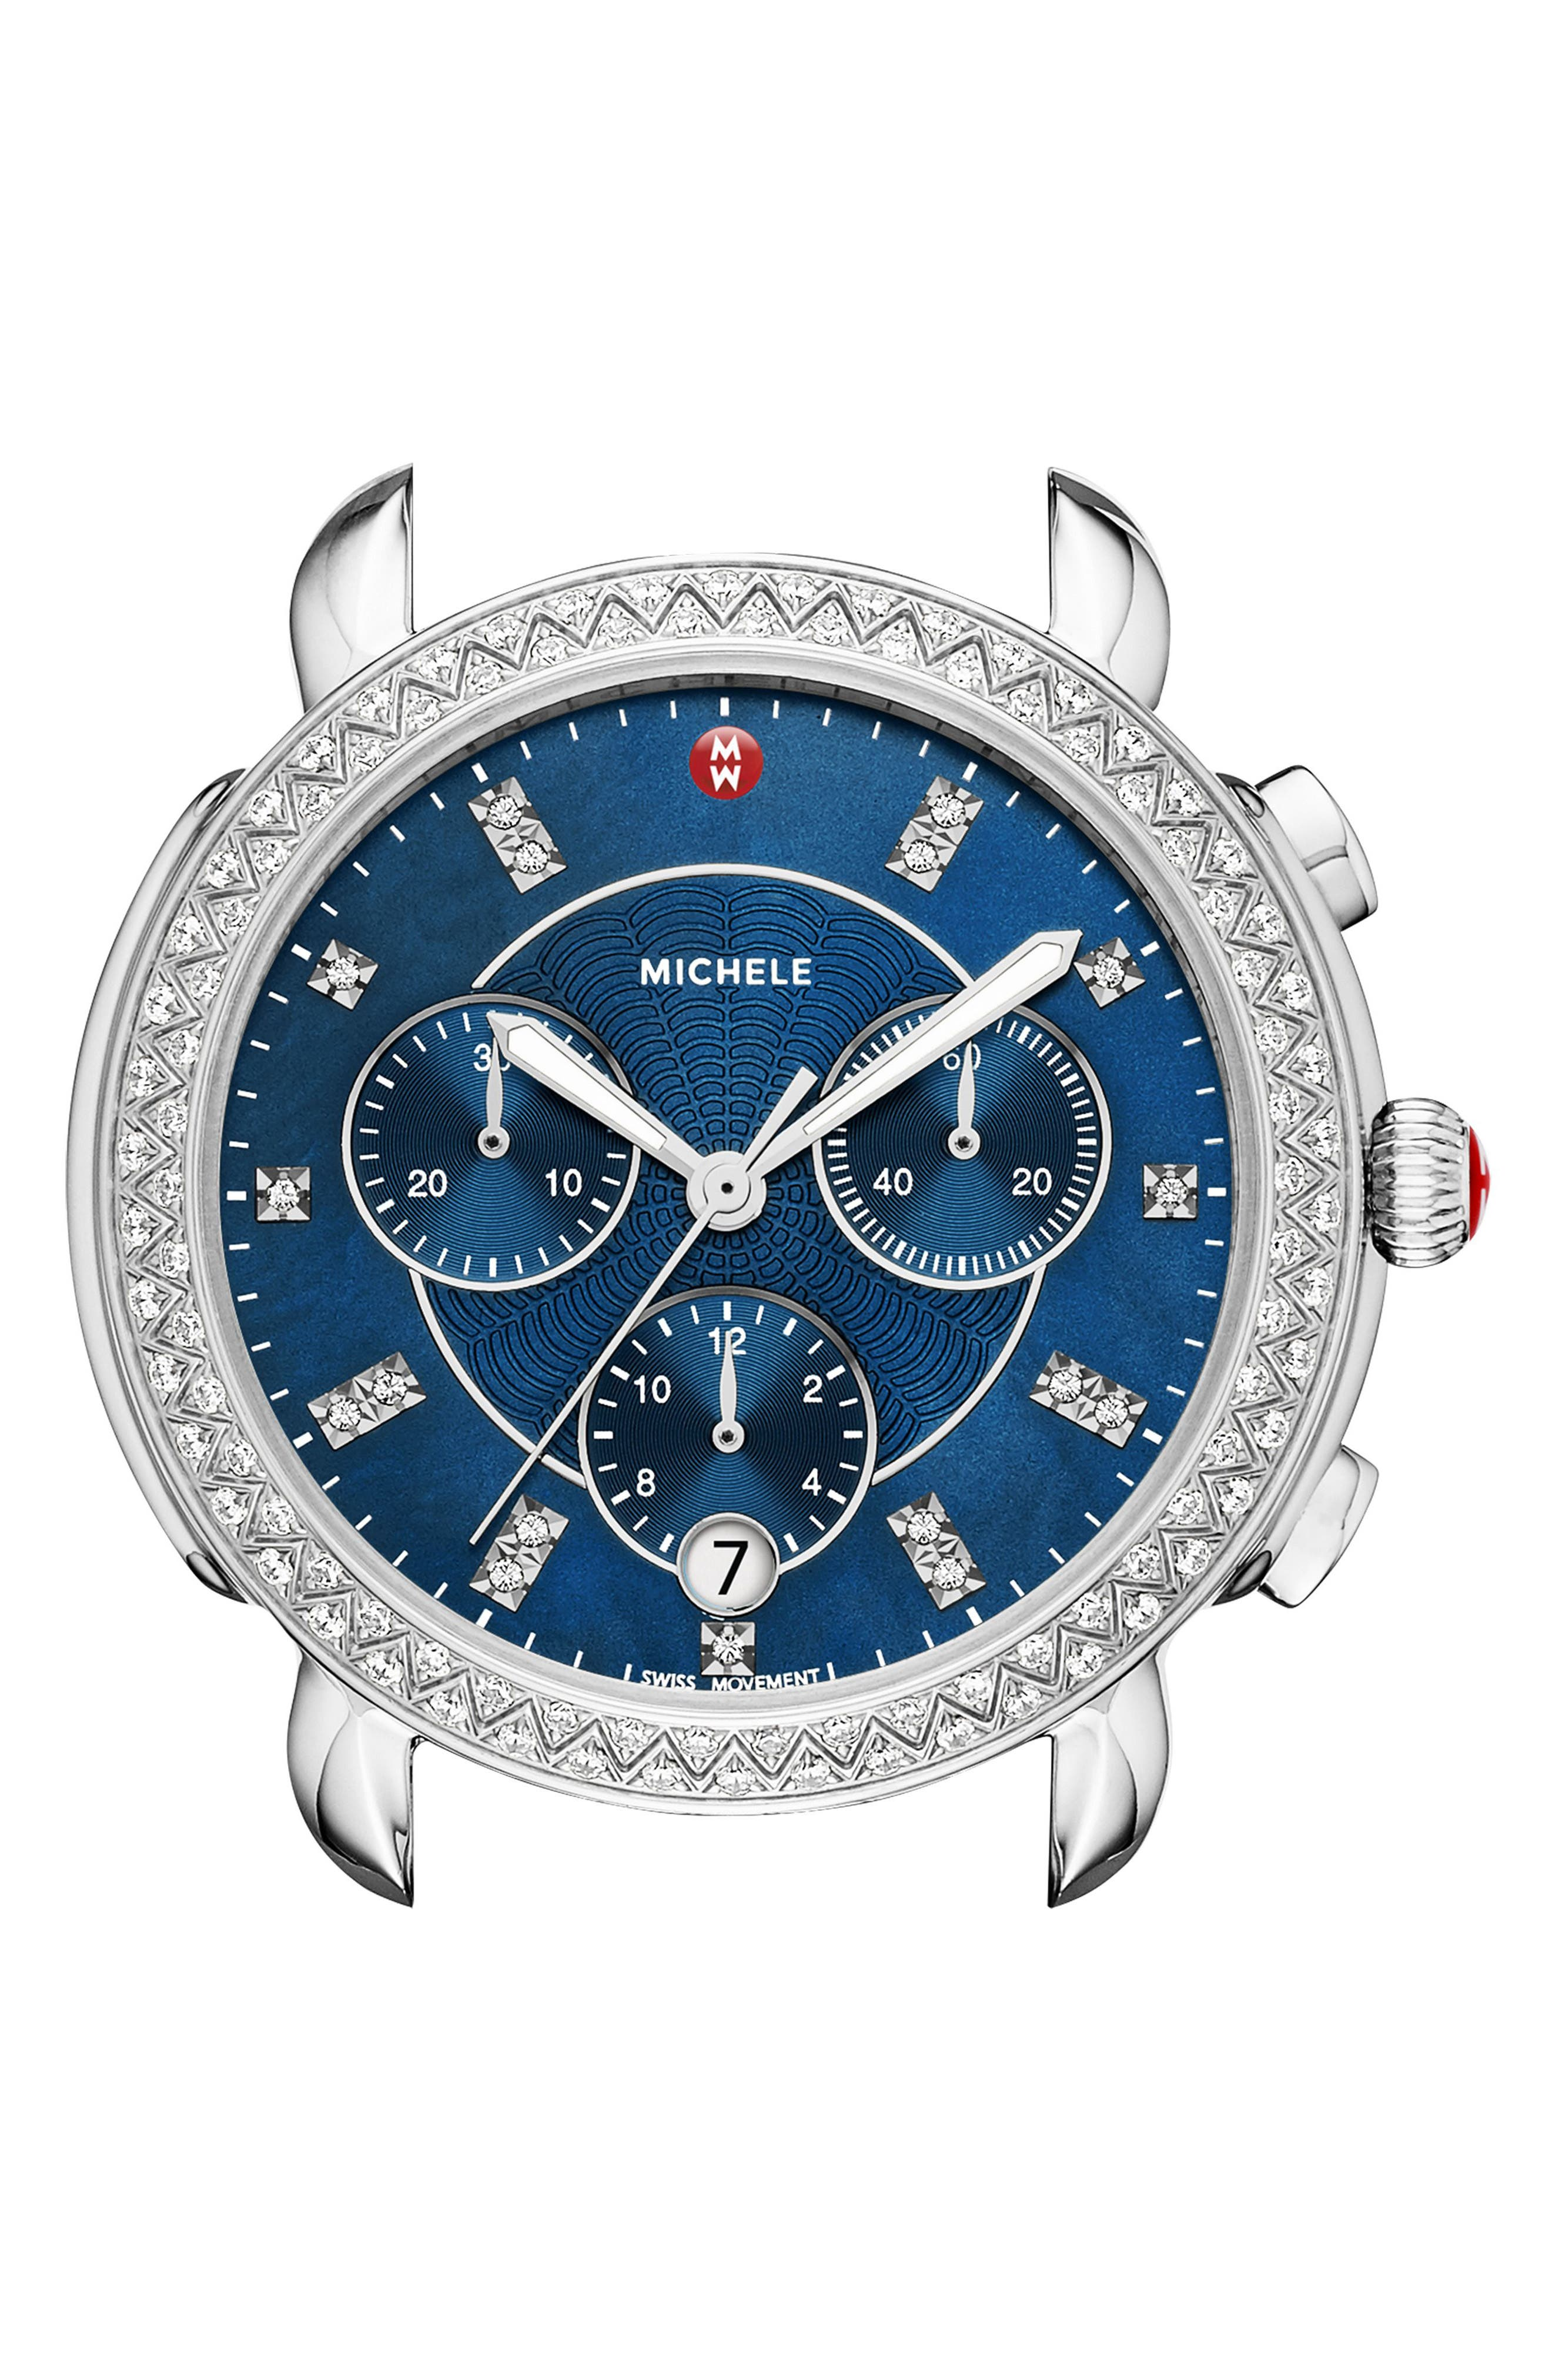 Michele sidney chrono diamond diamond dial watch case 38mm silver navy modesens for Diamond dial watch